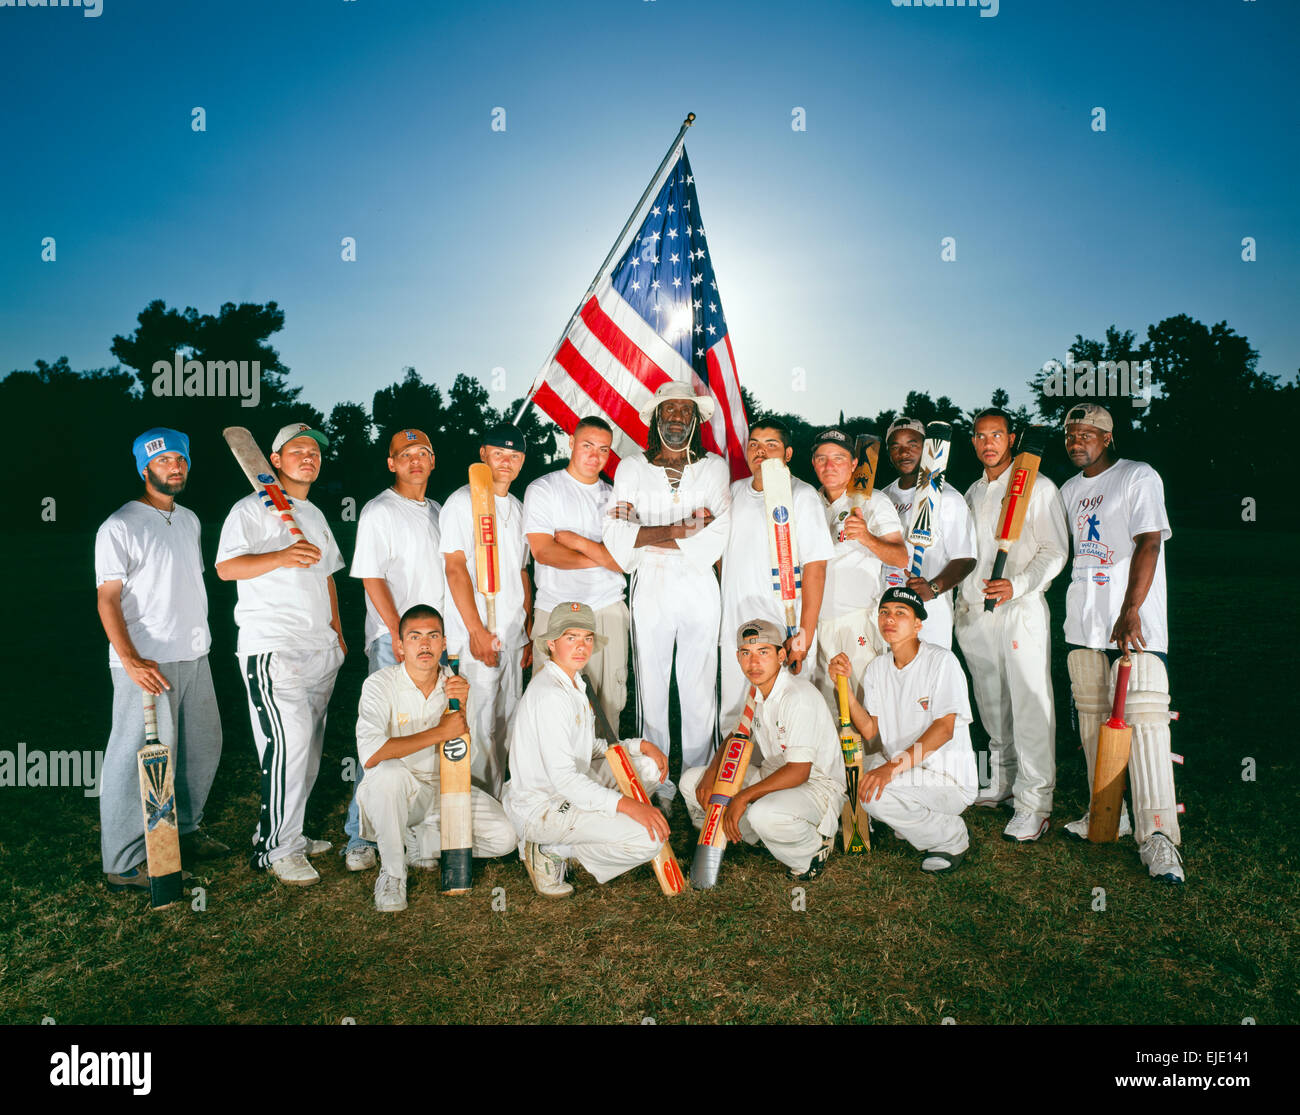 COMPTON, CA – MAY 01: Compton Cricket Team playing cricket in Los Angeles, California on May 01, 2000. - Stock Image